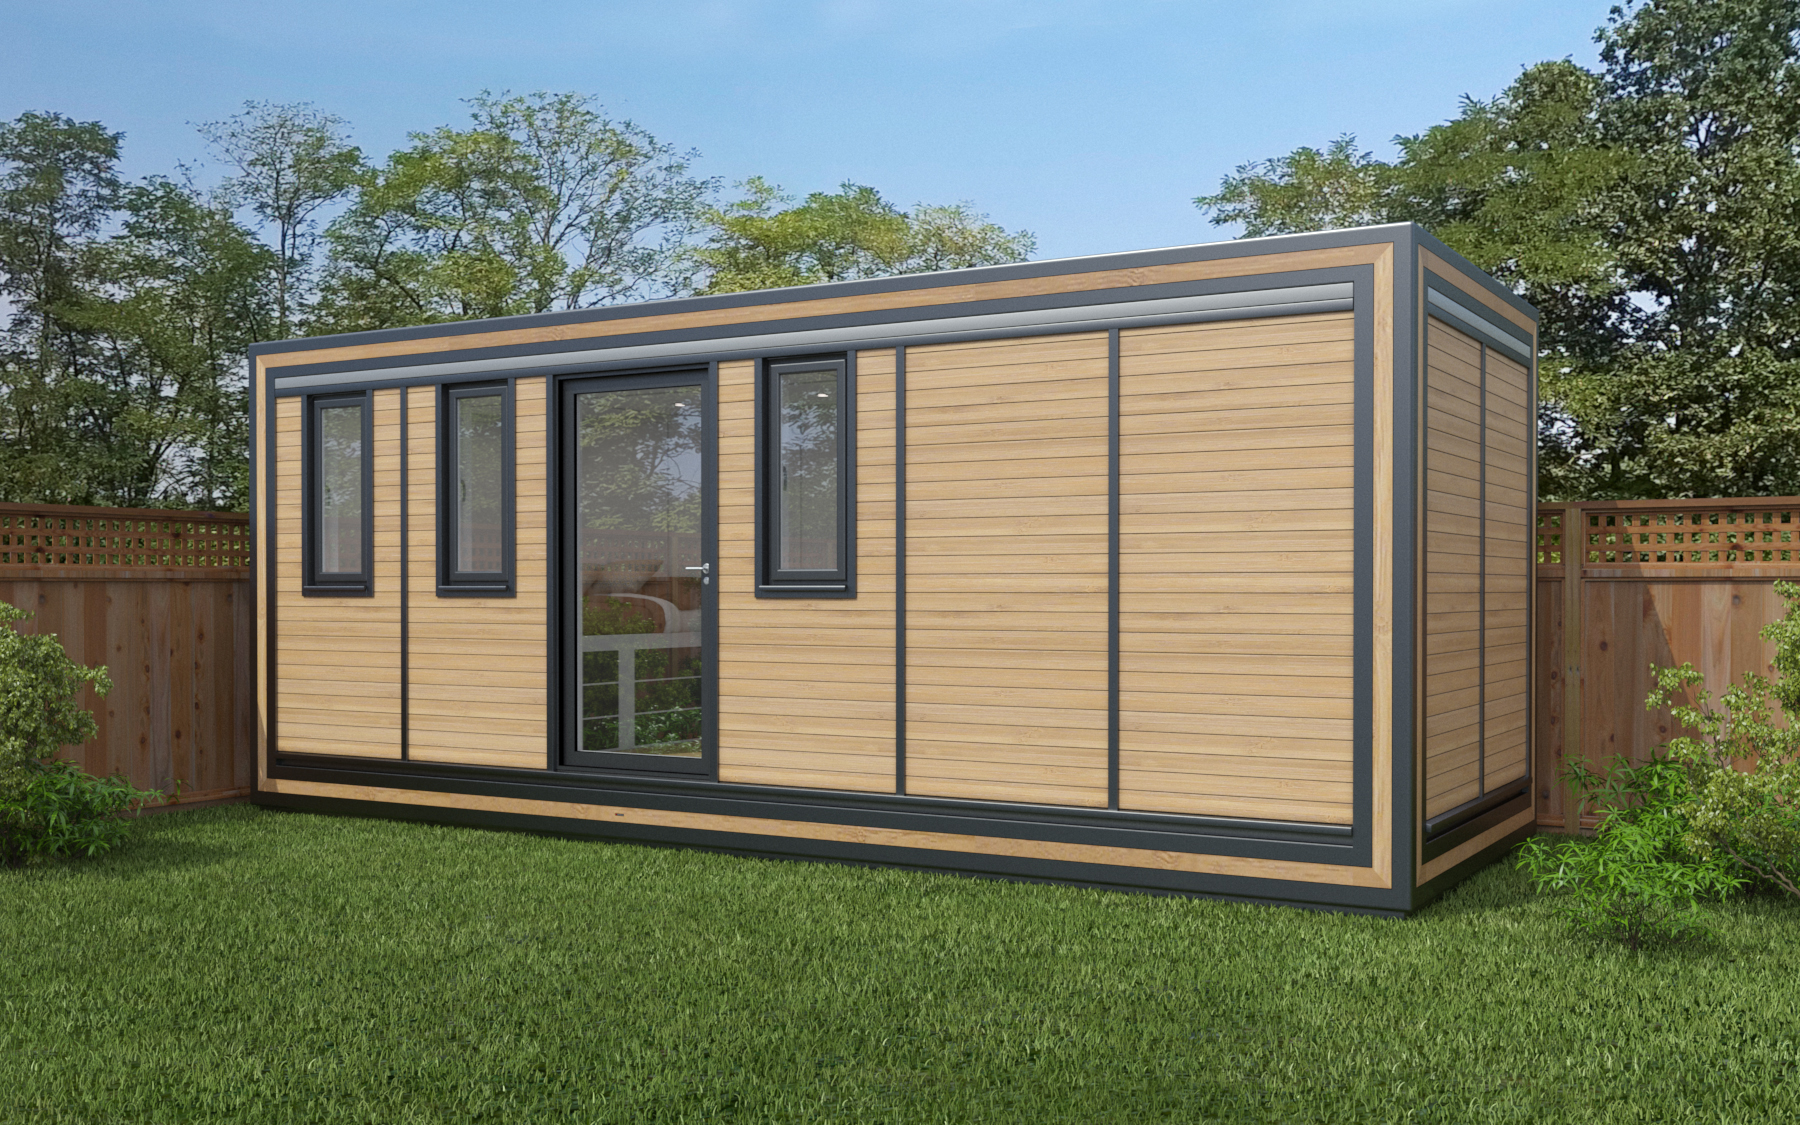 ZEDBOX 620  (6 x 2)  Internal Size: 6401 x 2117  External Size: 6871 x 2587  Bed Options: Single or Double  Kitchen Options: Micro Kitchen  Wet Room Options: Yes  Portico: No  Price:  £28,000    Optional Extras    Request Zedbox Catalogue